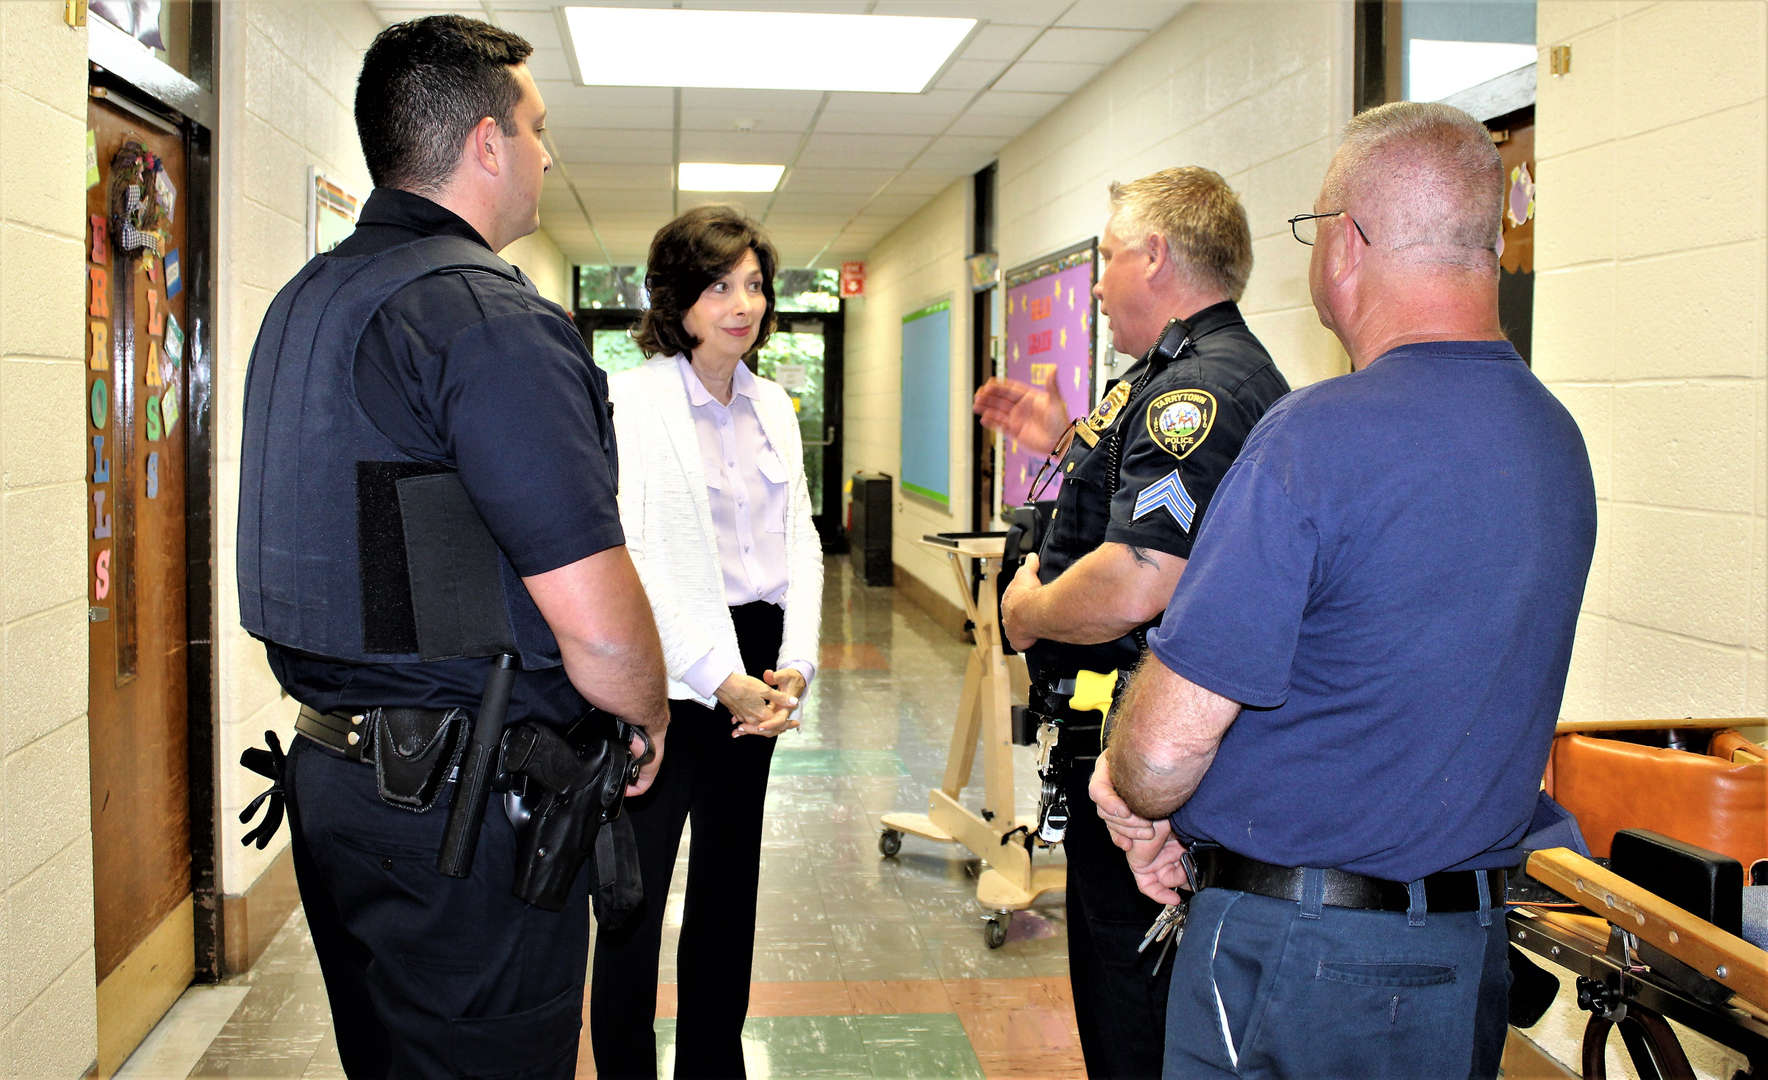 School principal taking police officers on a school tour.